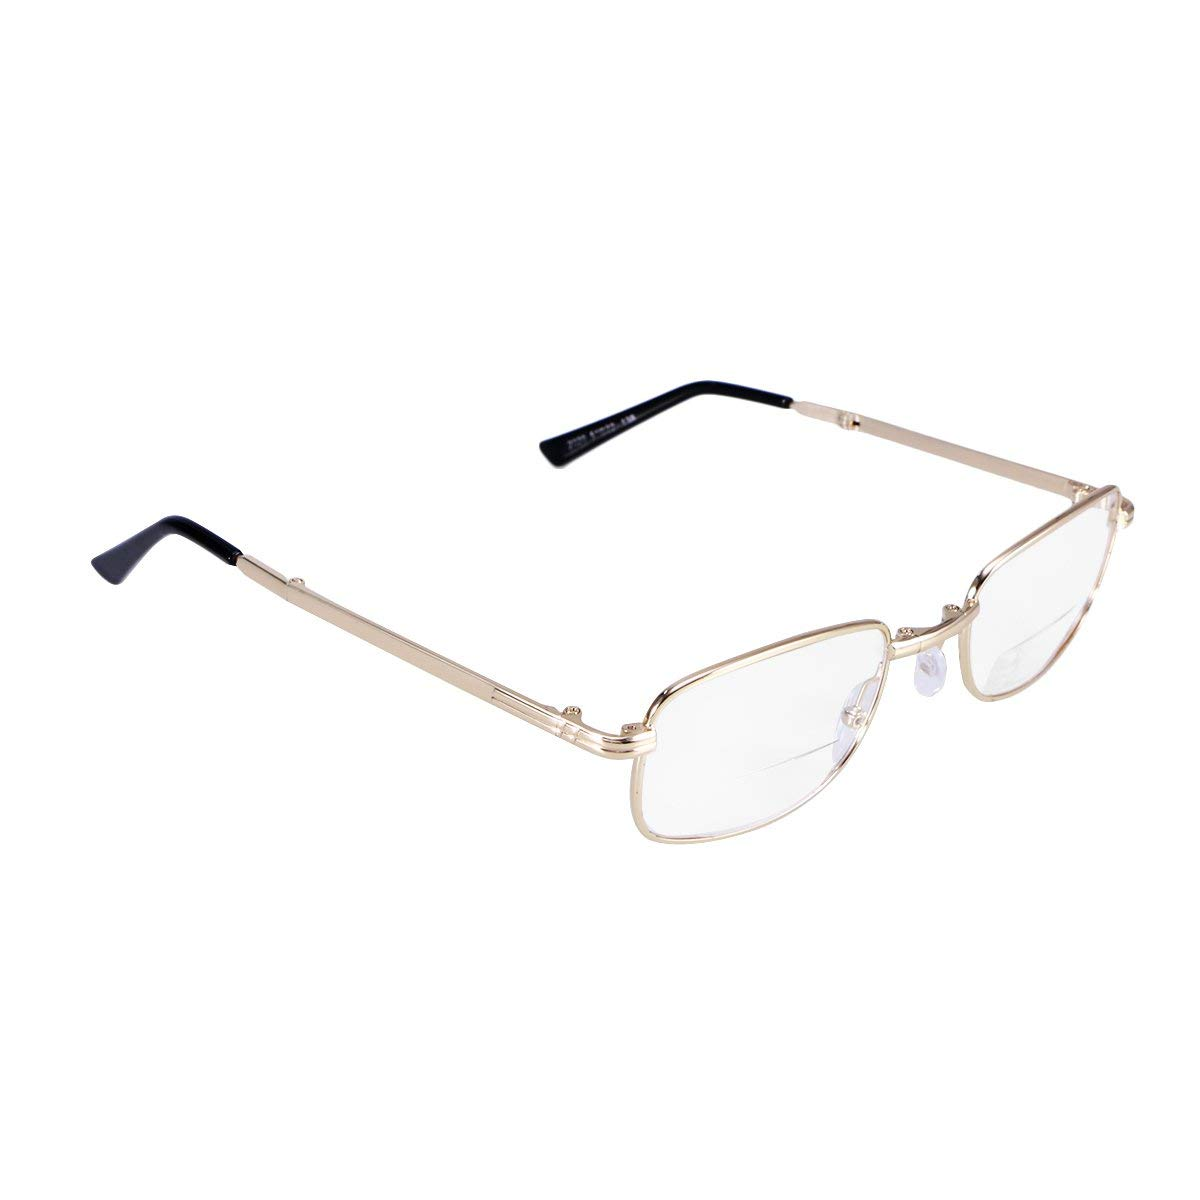 f8931f84943 Get Quotations · ROSENICE Reading Glasses +2.00D Folding Reading Glasses  Anti Fatigue Presbyopic Glsses Women Men Reading